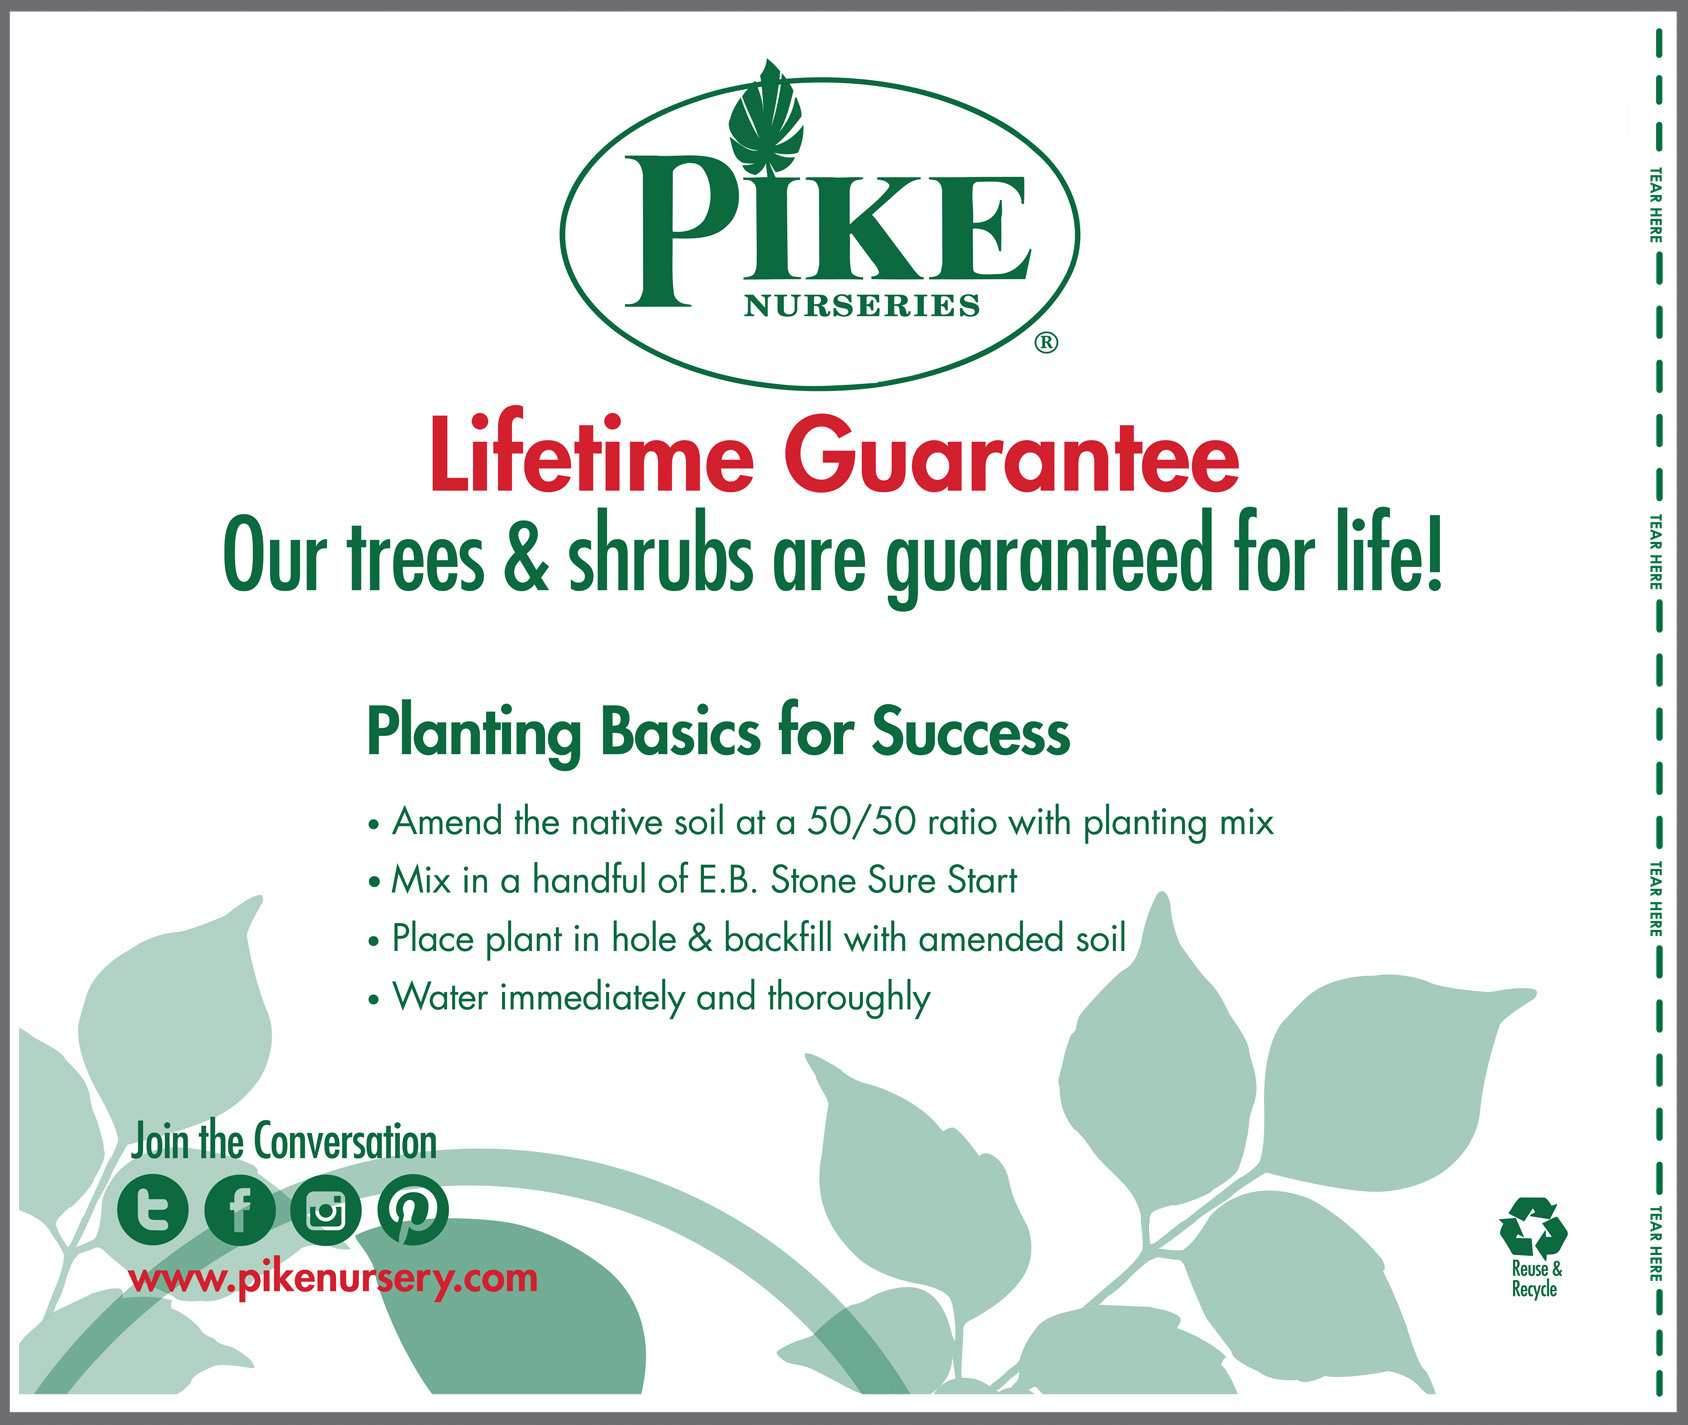 Pike Nurseries_38Wx45H_with border.jpg